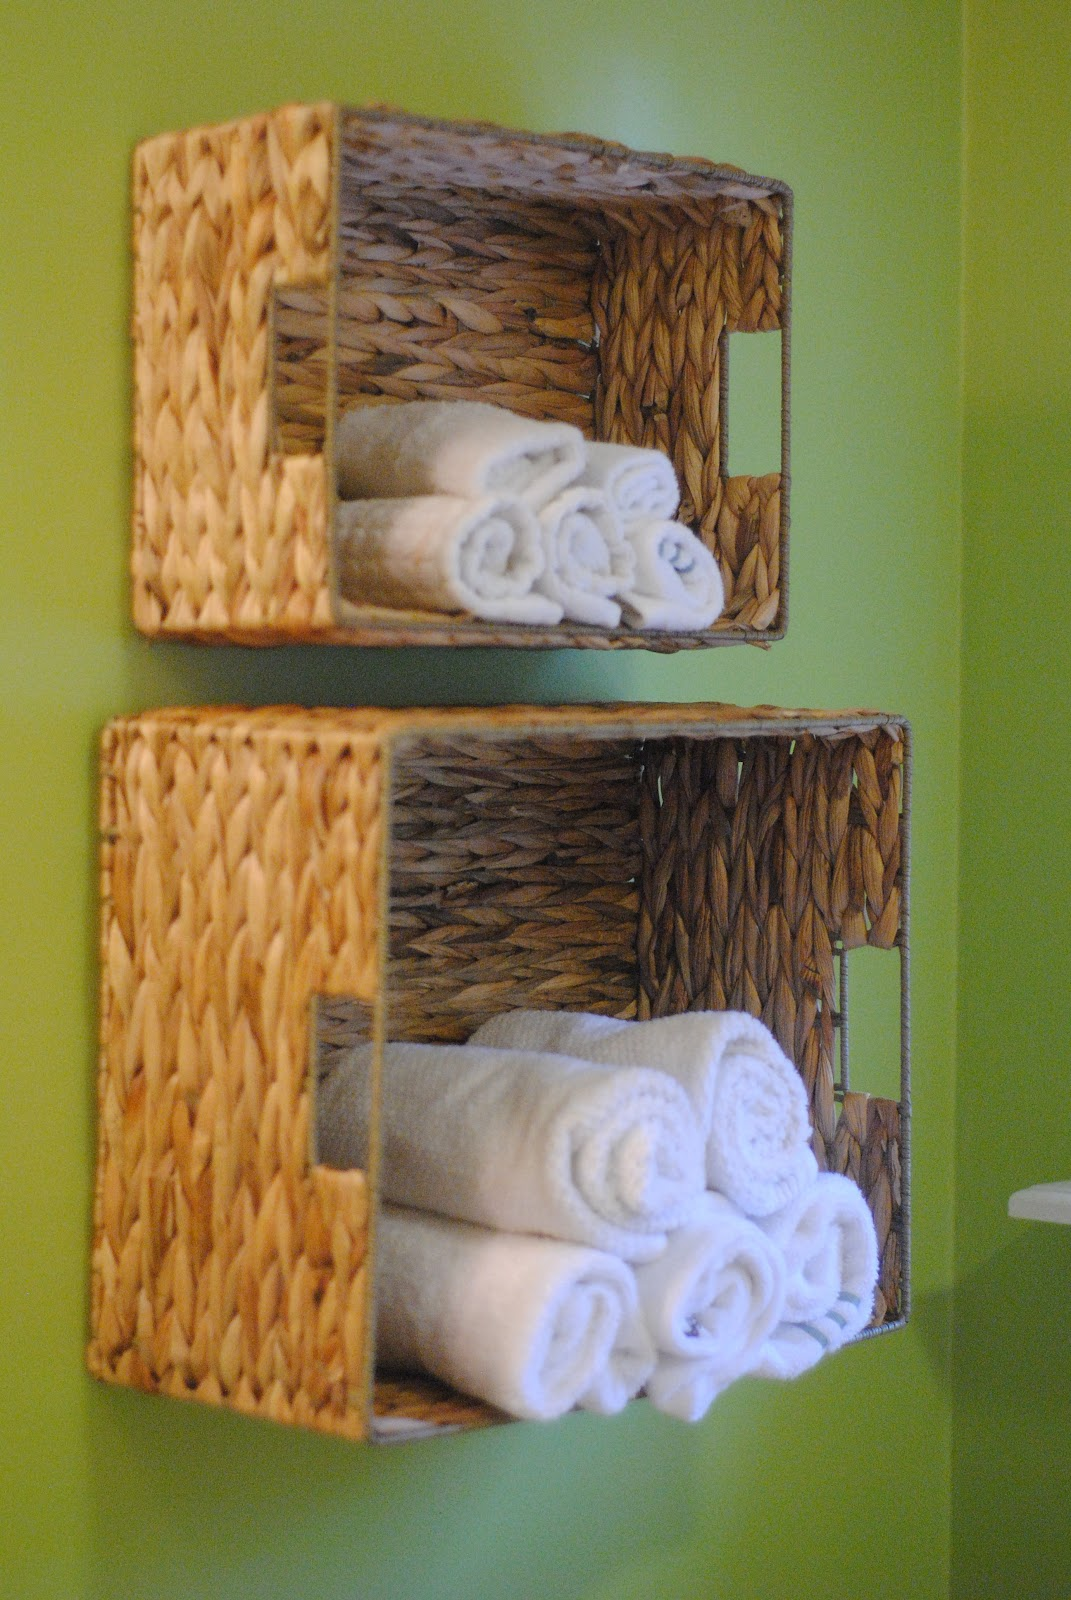 diy bathroom towel storage in under 5 minutes. Black Bedroom Furniture Sets. Home Design Ideas